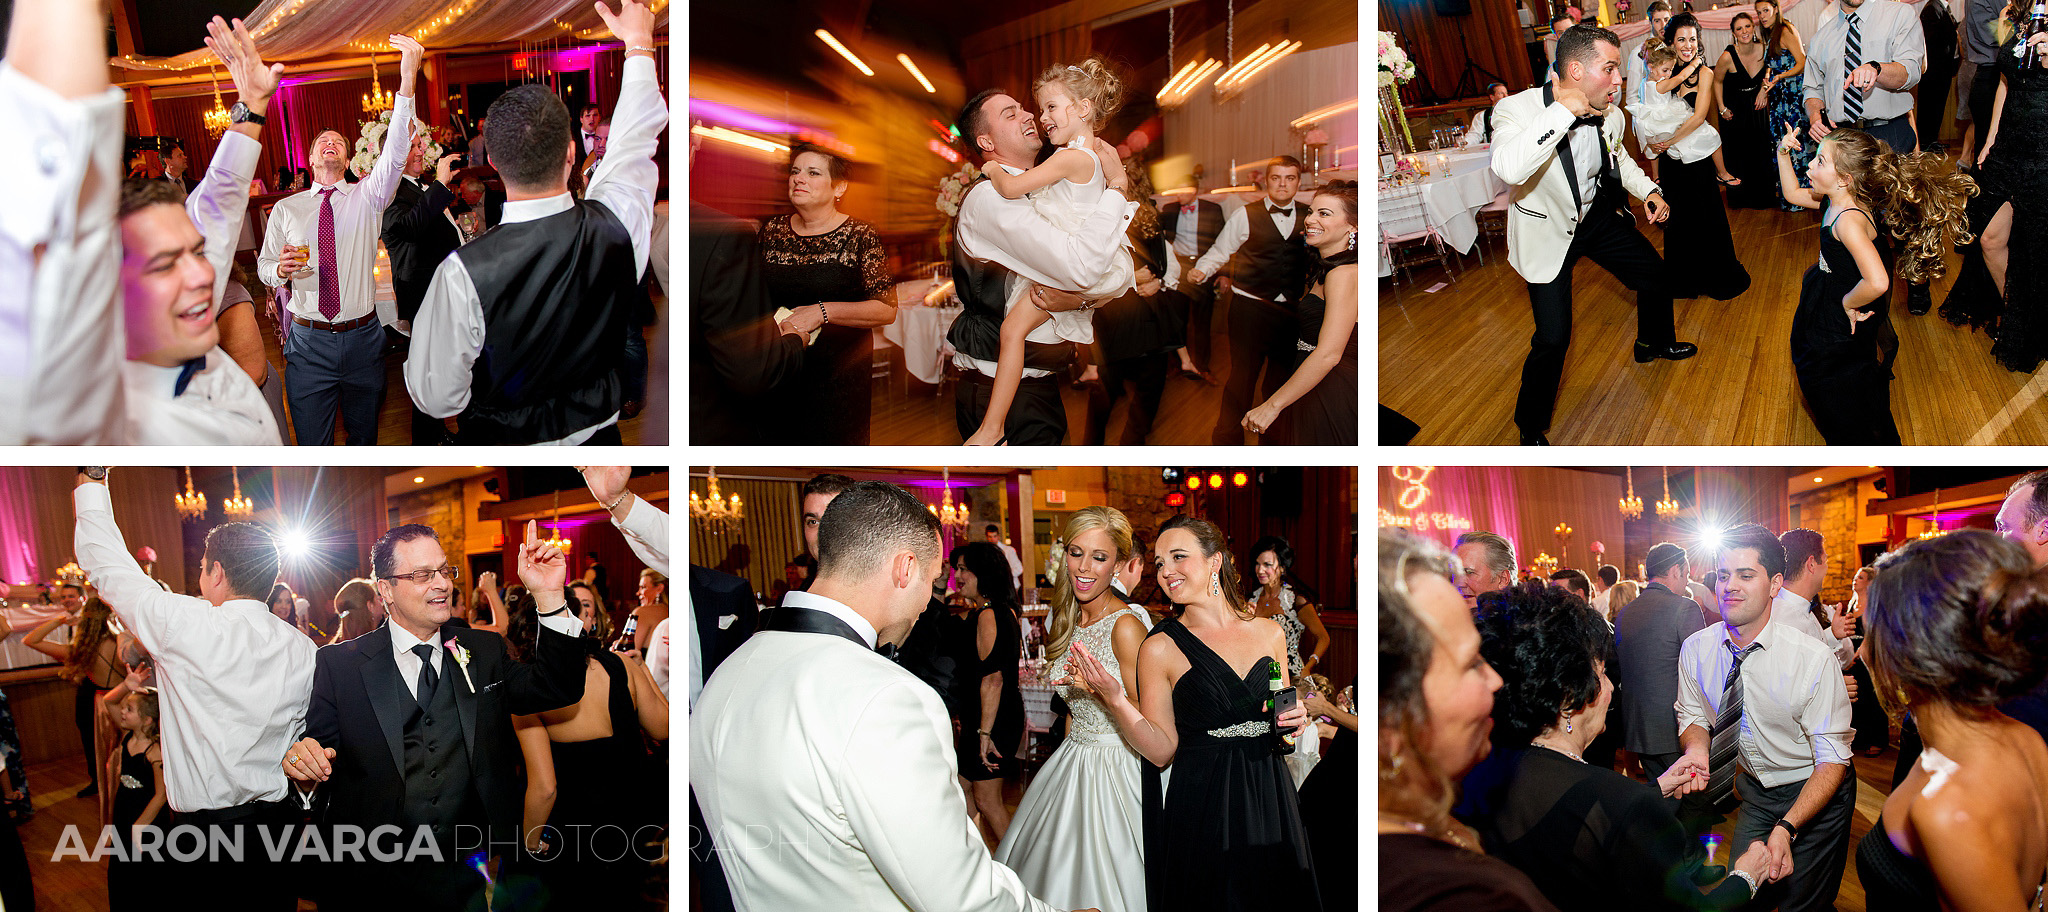 44 oglebay wedding reception dancing - Gina + Chris | Oglebay Resort Wedding Photos